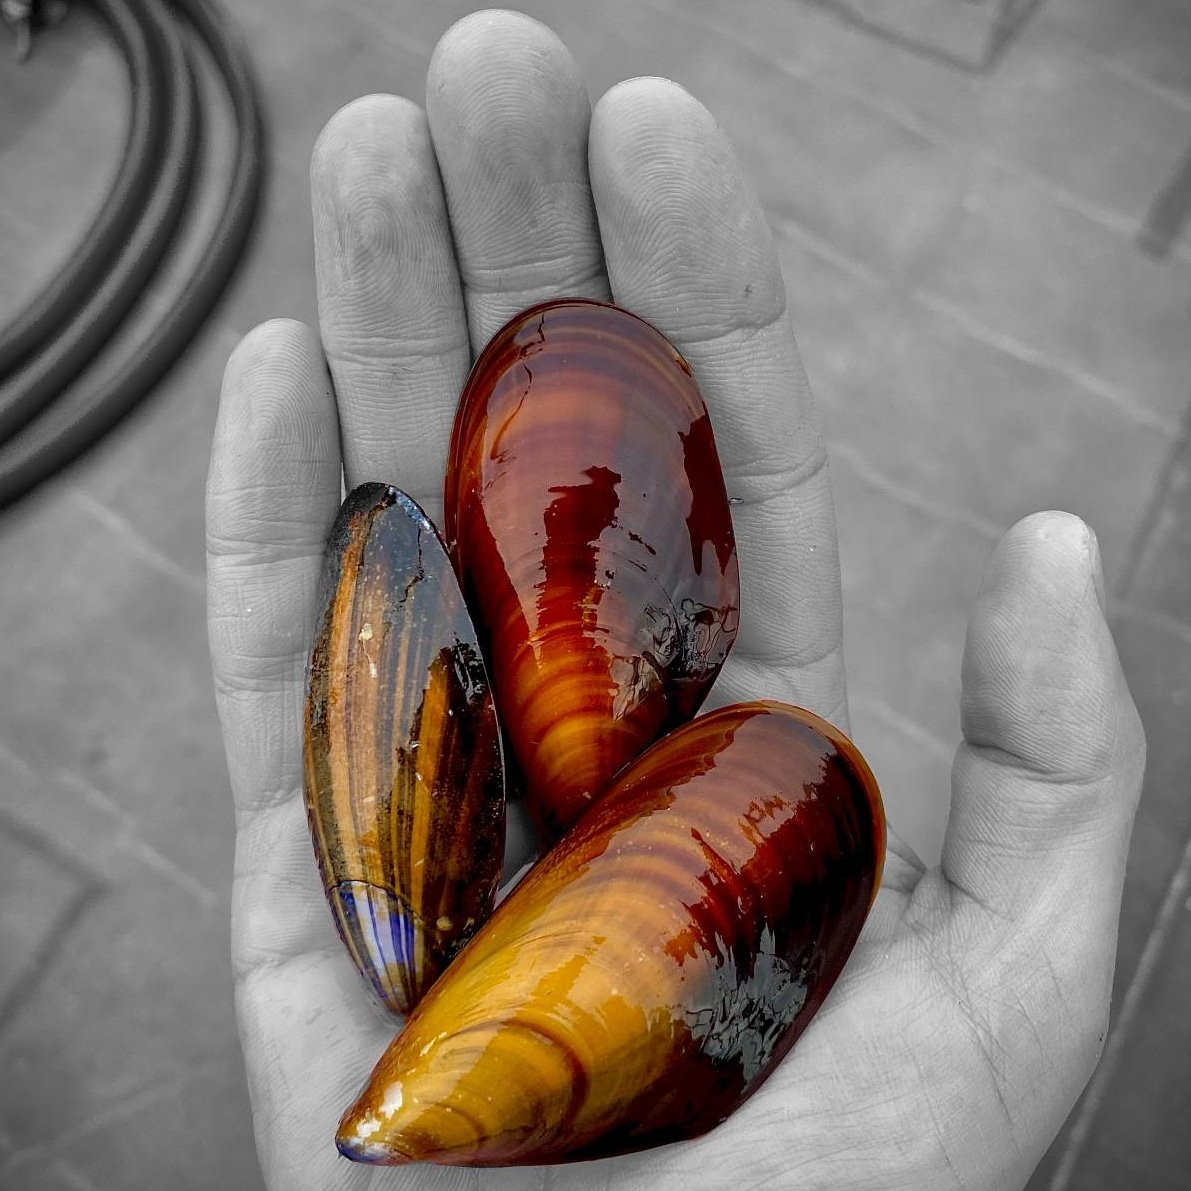 Check out the color on these mussels – so beautiful! Love the warm, autumn tones. https://t.co/c0AkzH57C8